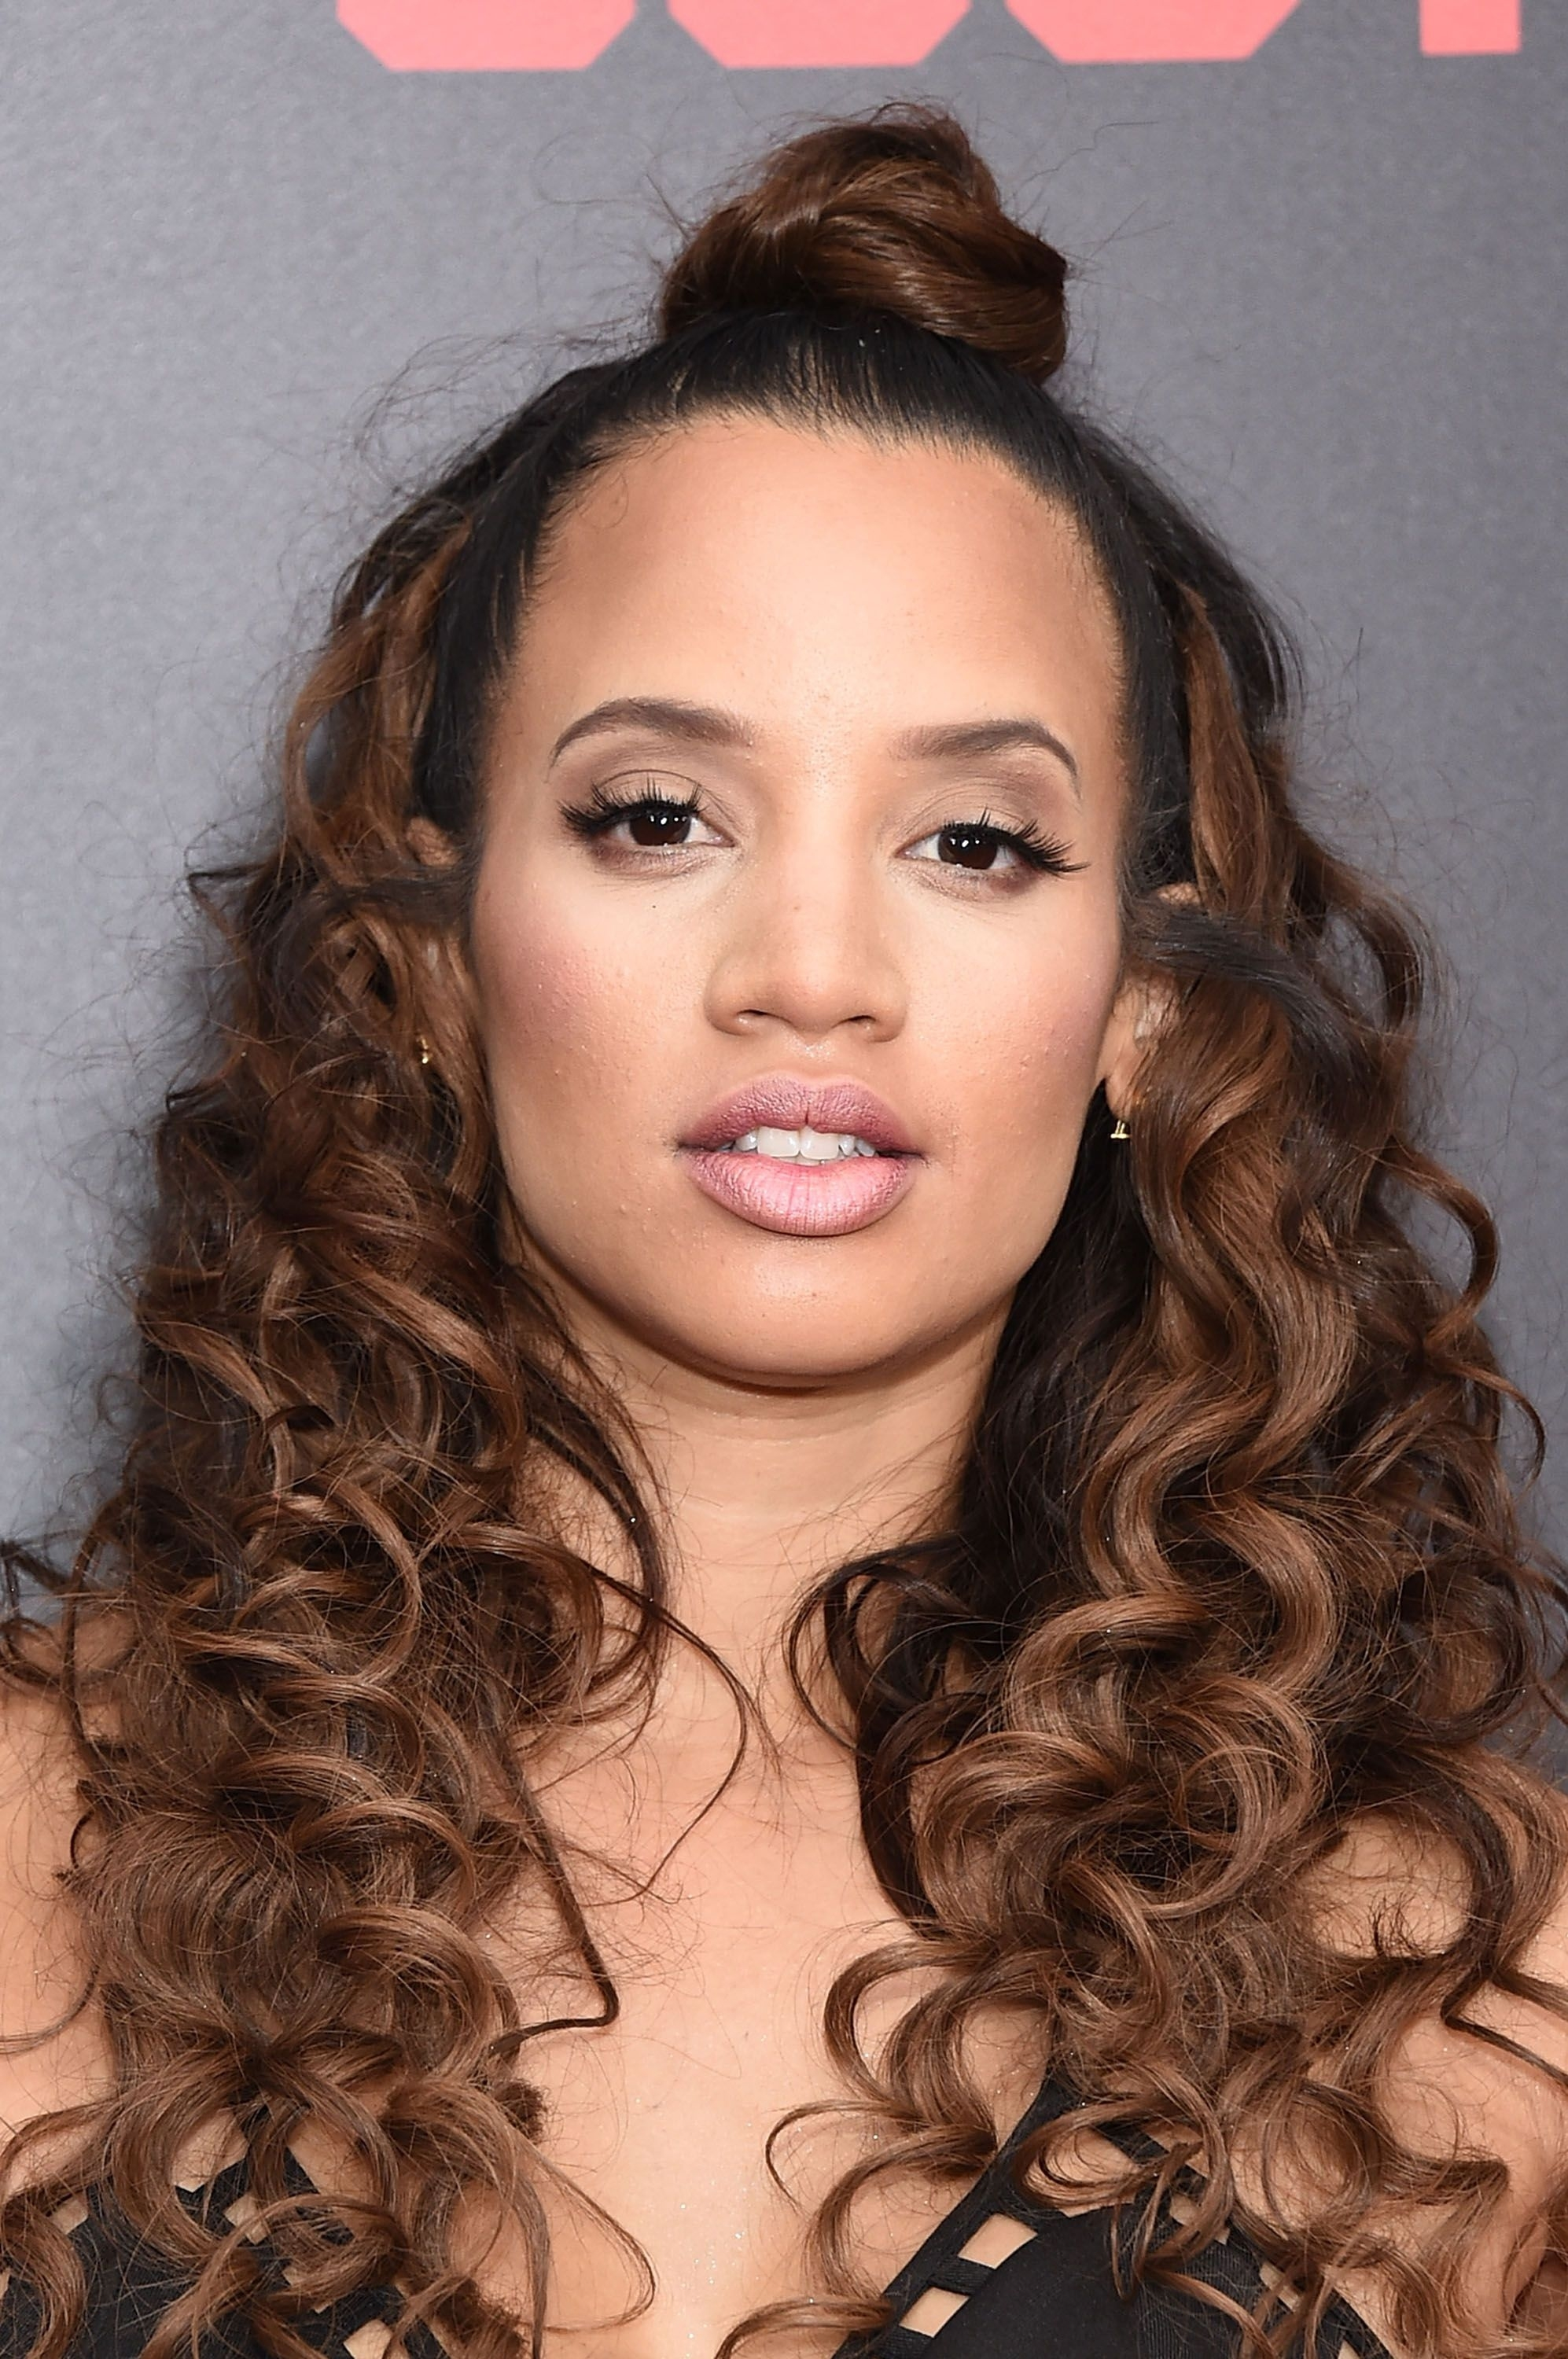 55 Best Curly Hairstyles Of 2018 - Cute Hairstyles For Curly Hair To for Haircuts For Curly Hair Ladies